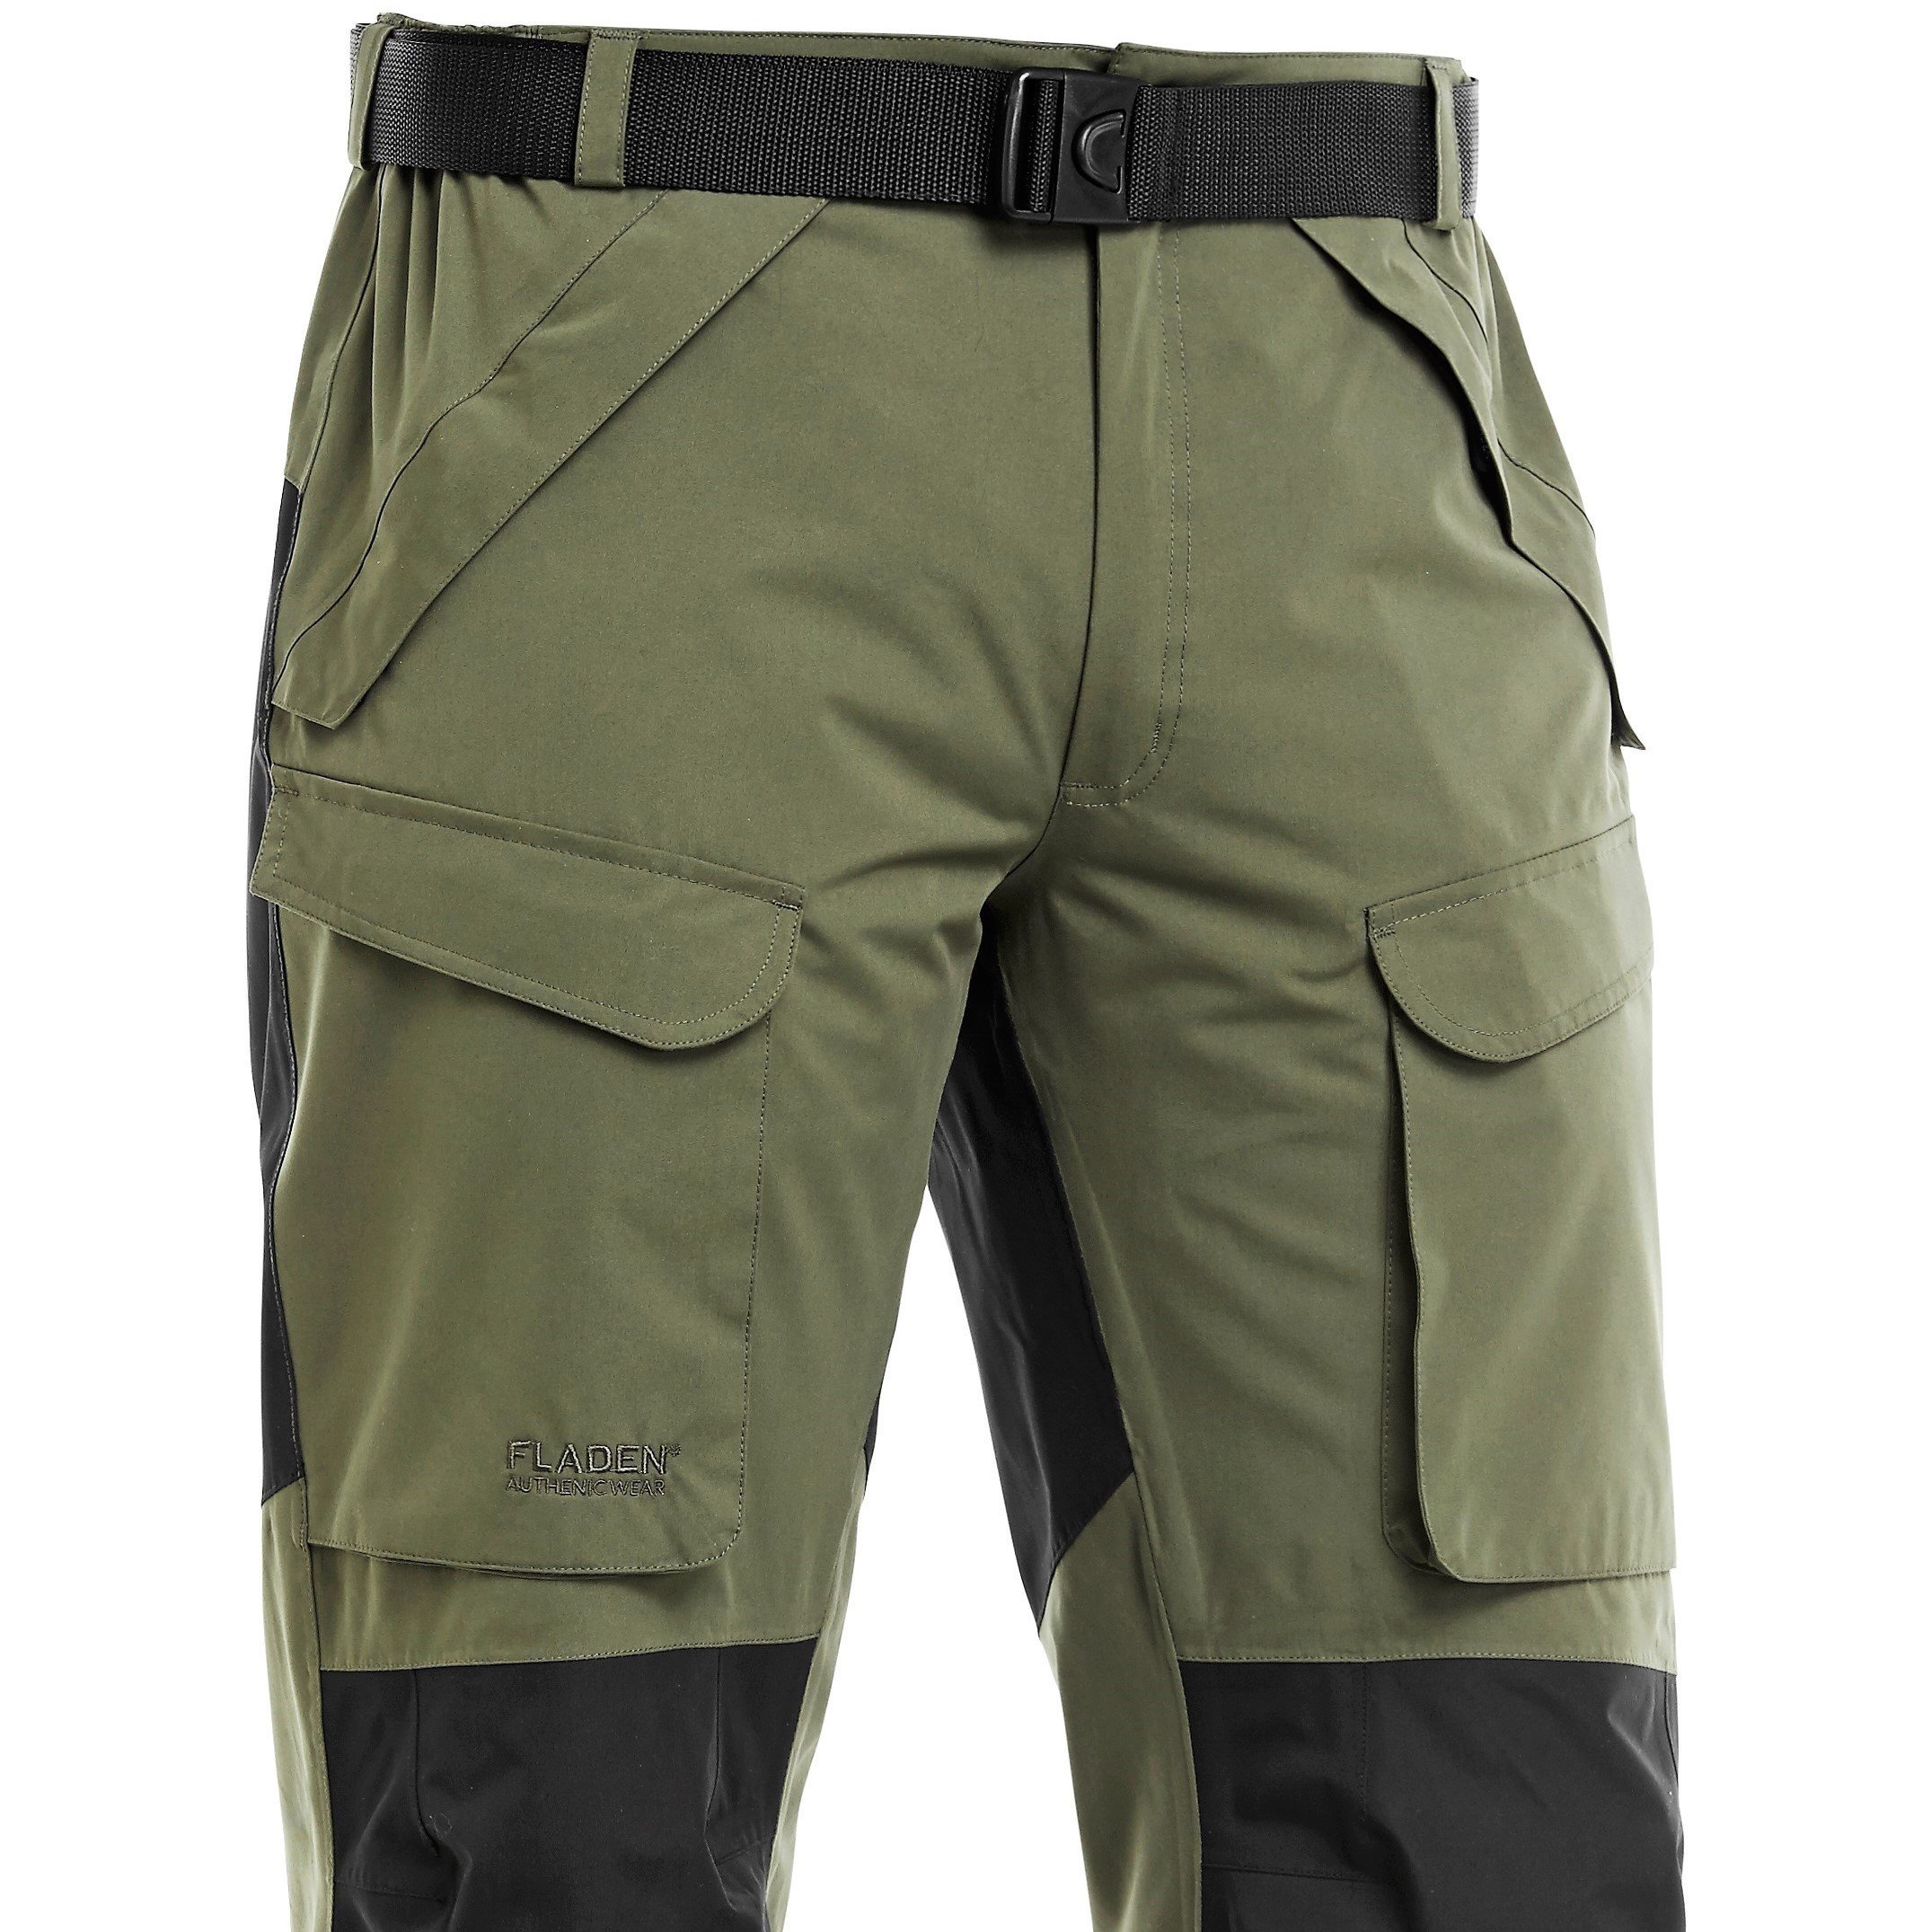 FLADEN Fishing - Authentic Wear 2.0 Fully Waterproof and Windproof Outdoor Utility Trousers - GREEN/BLACK - Ideal for Fishing, Hunting & Similar Pursuits